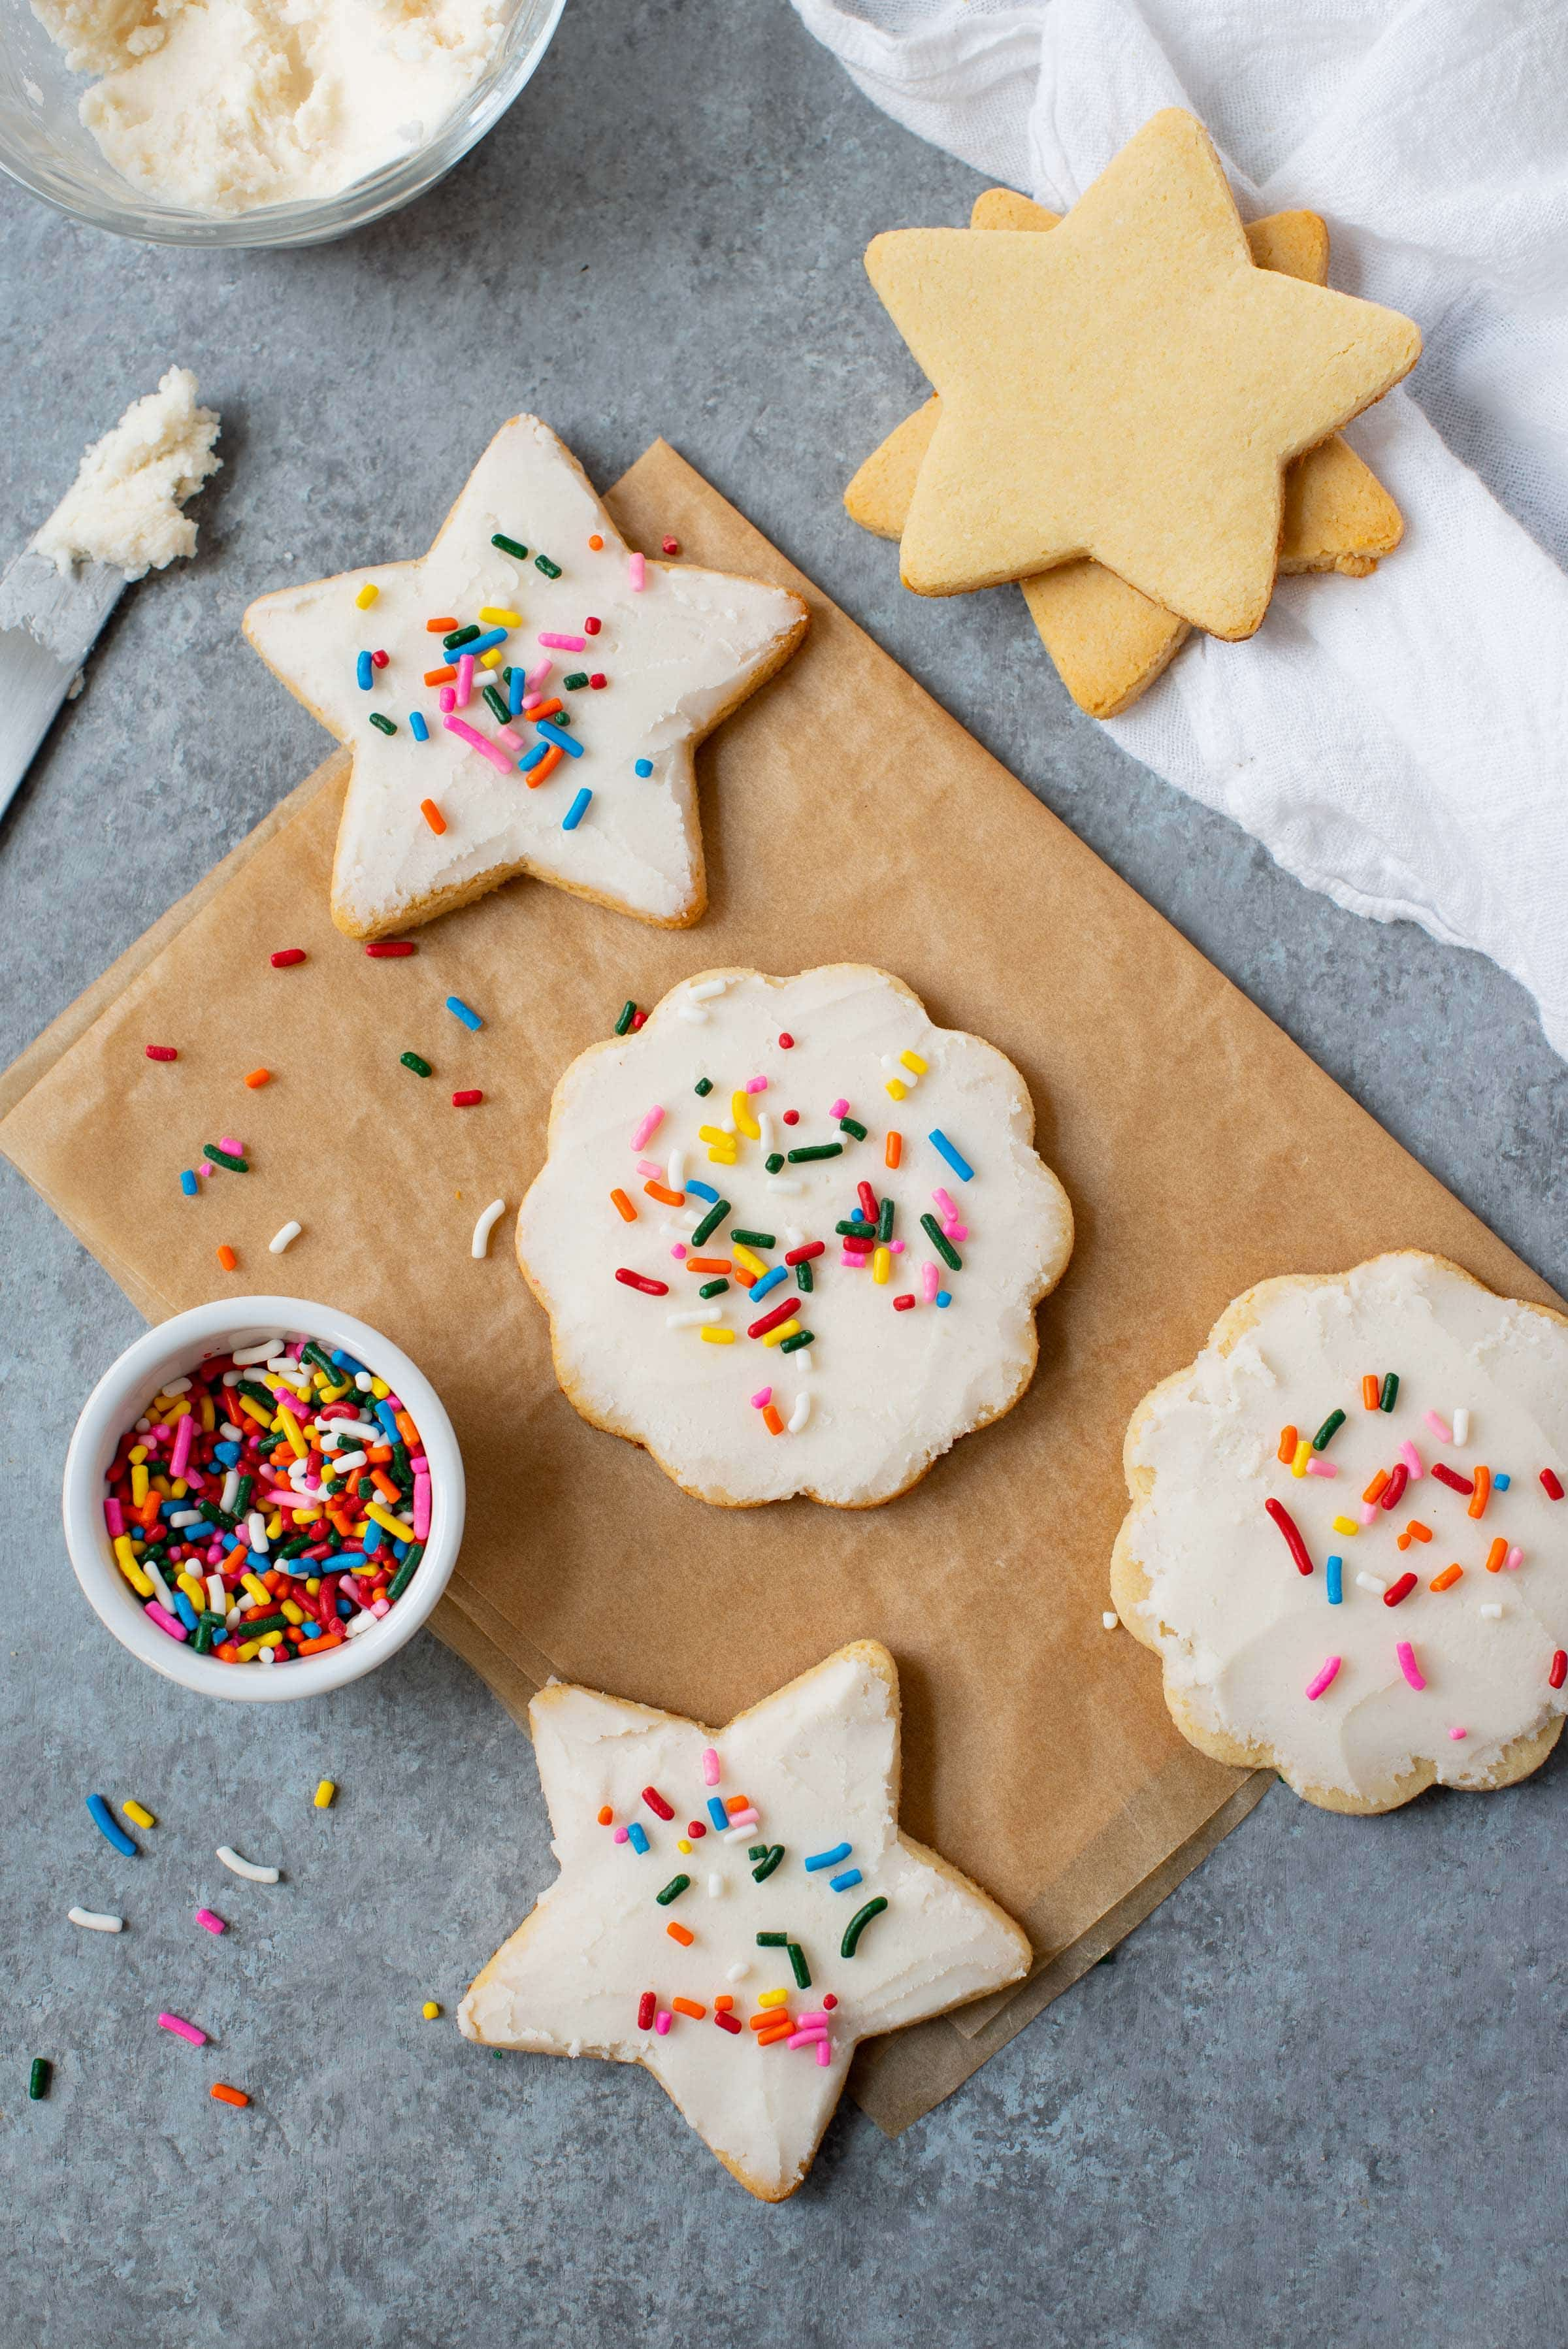 Grain-free paleo sugar cookies with coconut butter frosting and rainbow sprinkles